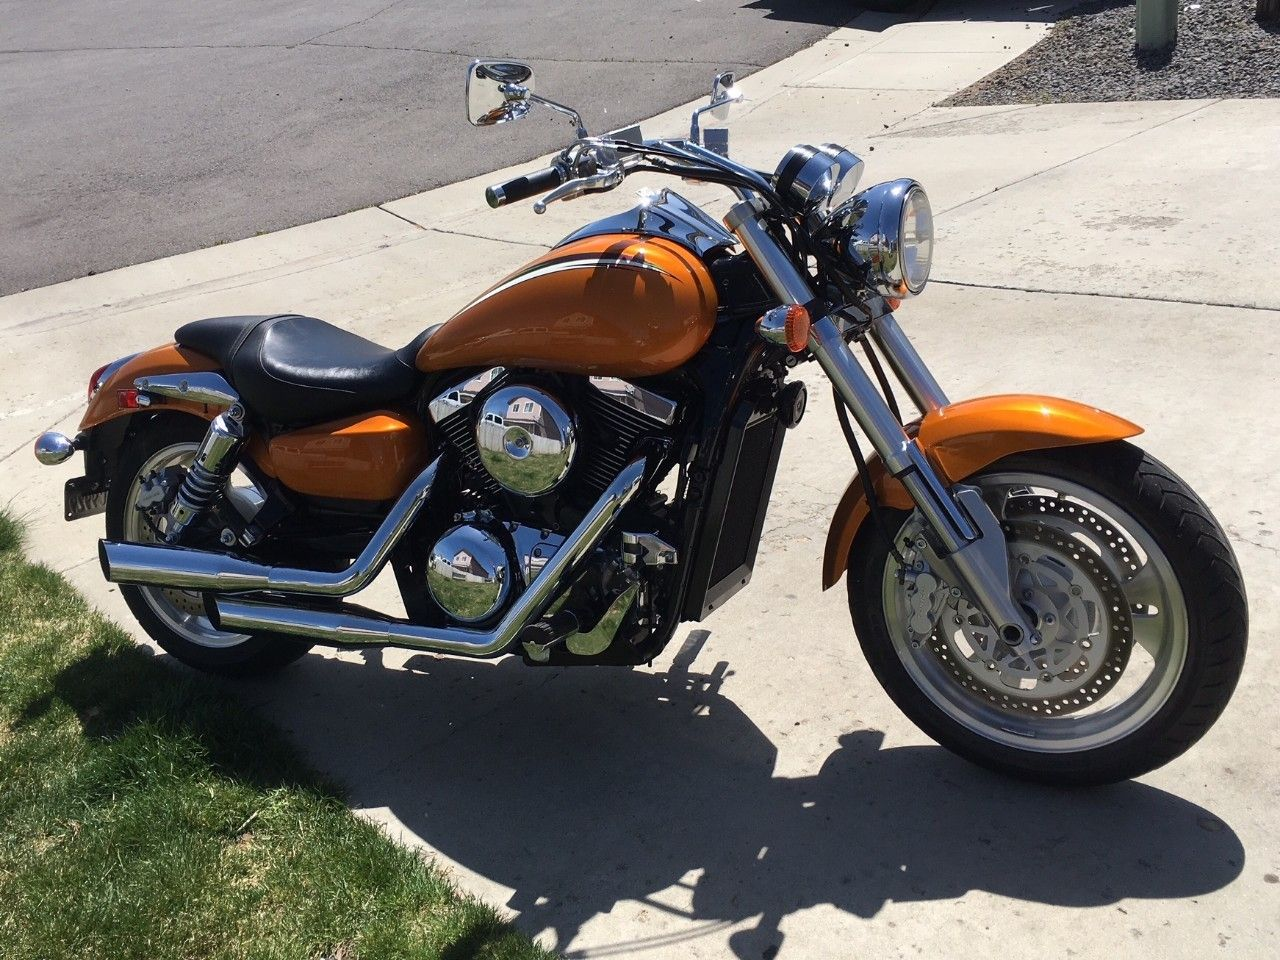 Check Out This 2002 Kawasaki Vulcan 1500 Mean Streak Listing In Susanville Ca 96130 On Cycletrader Com It Kawasaki Bikes Kawasaki Vulcan Kawasaki Vulcan 1500